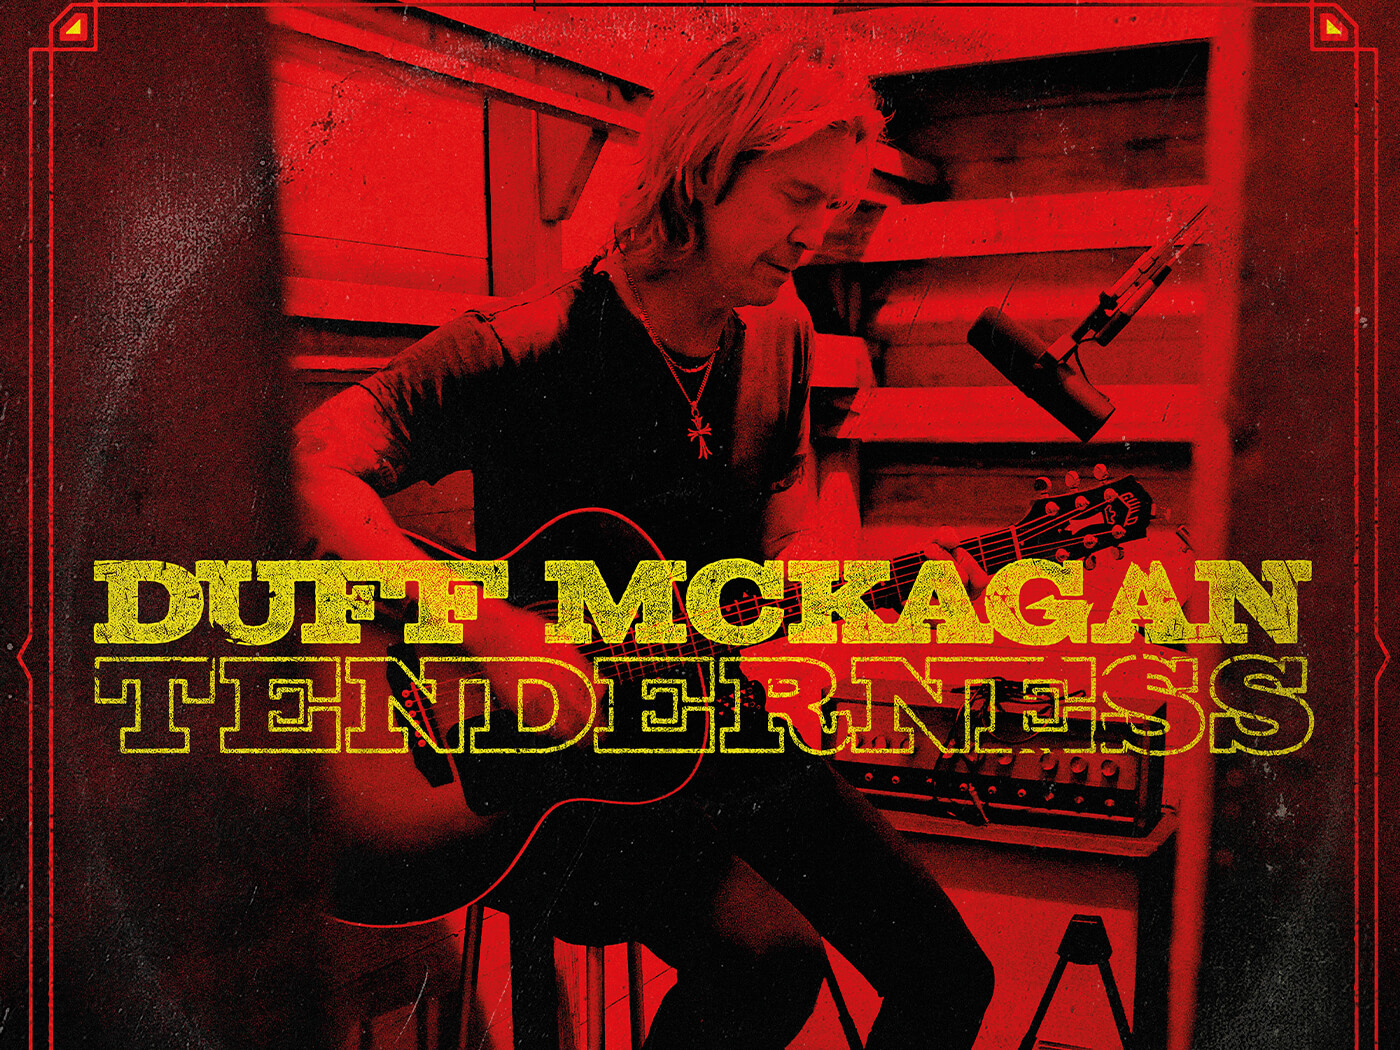 Interview Duff McKagan Tenderness album cover